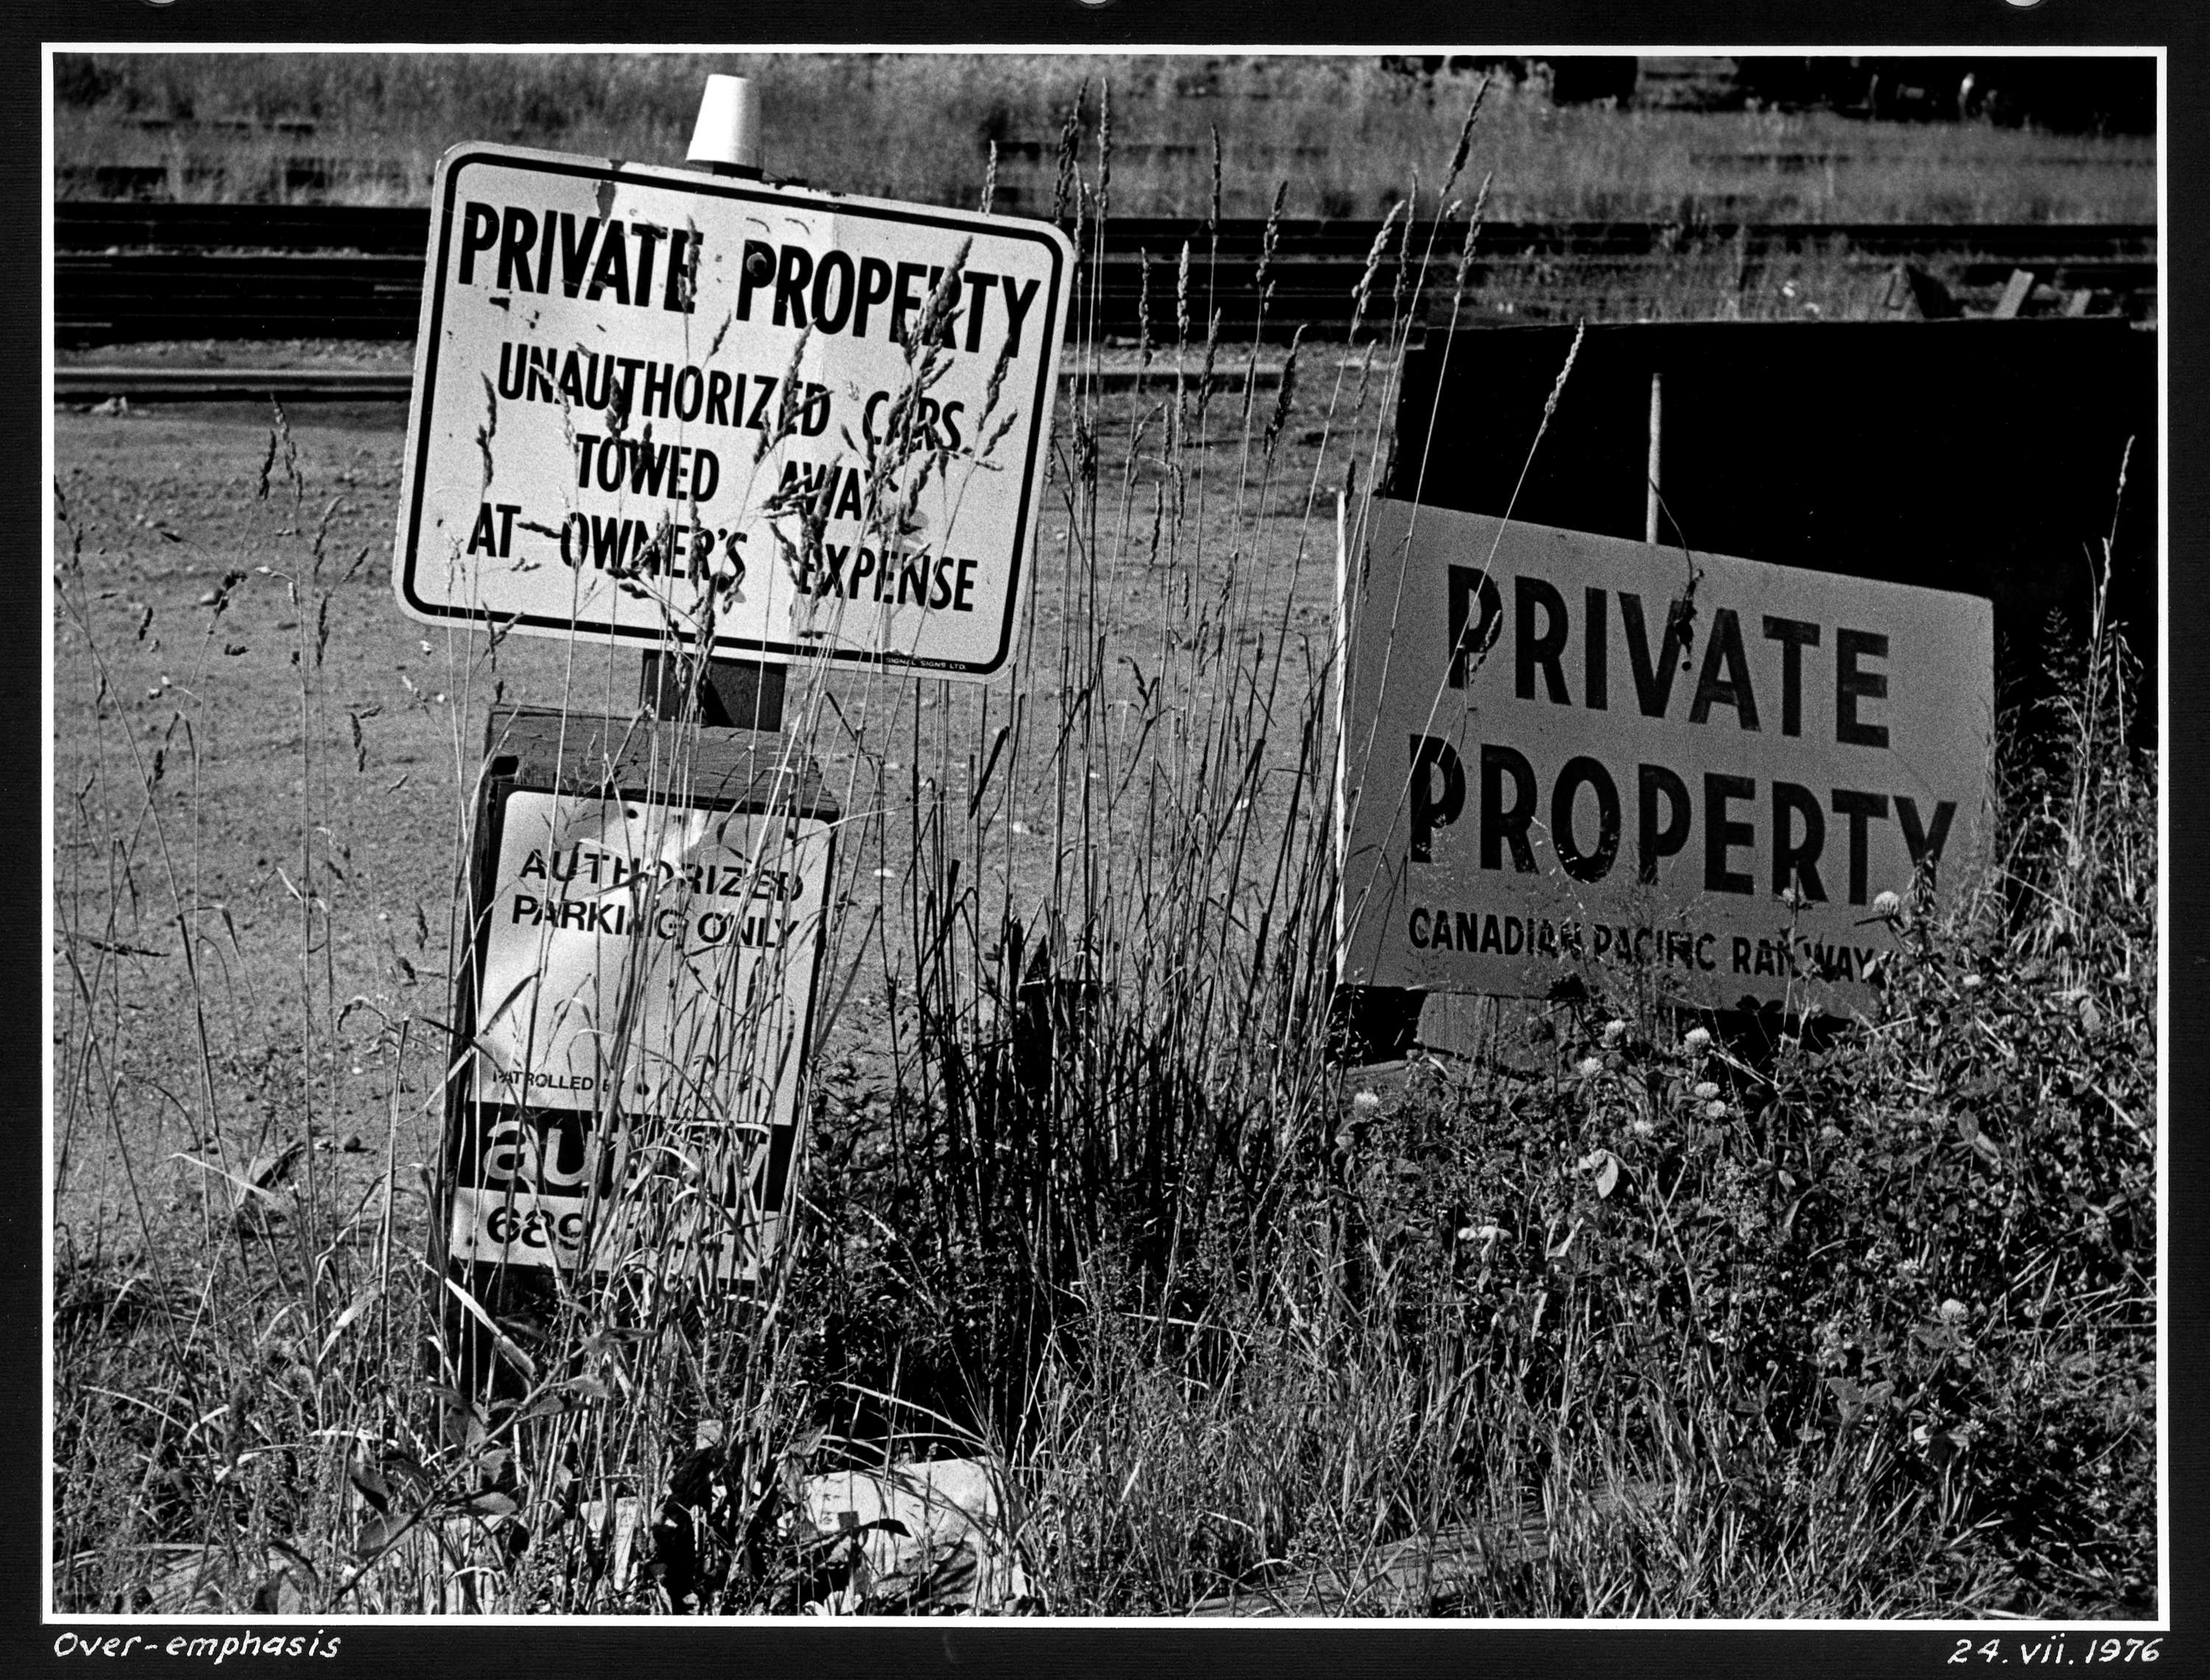 Over emphasis [private property signs for C P R ] - City of